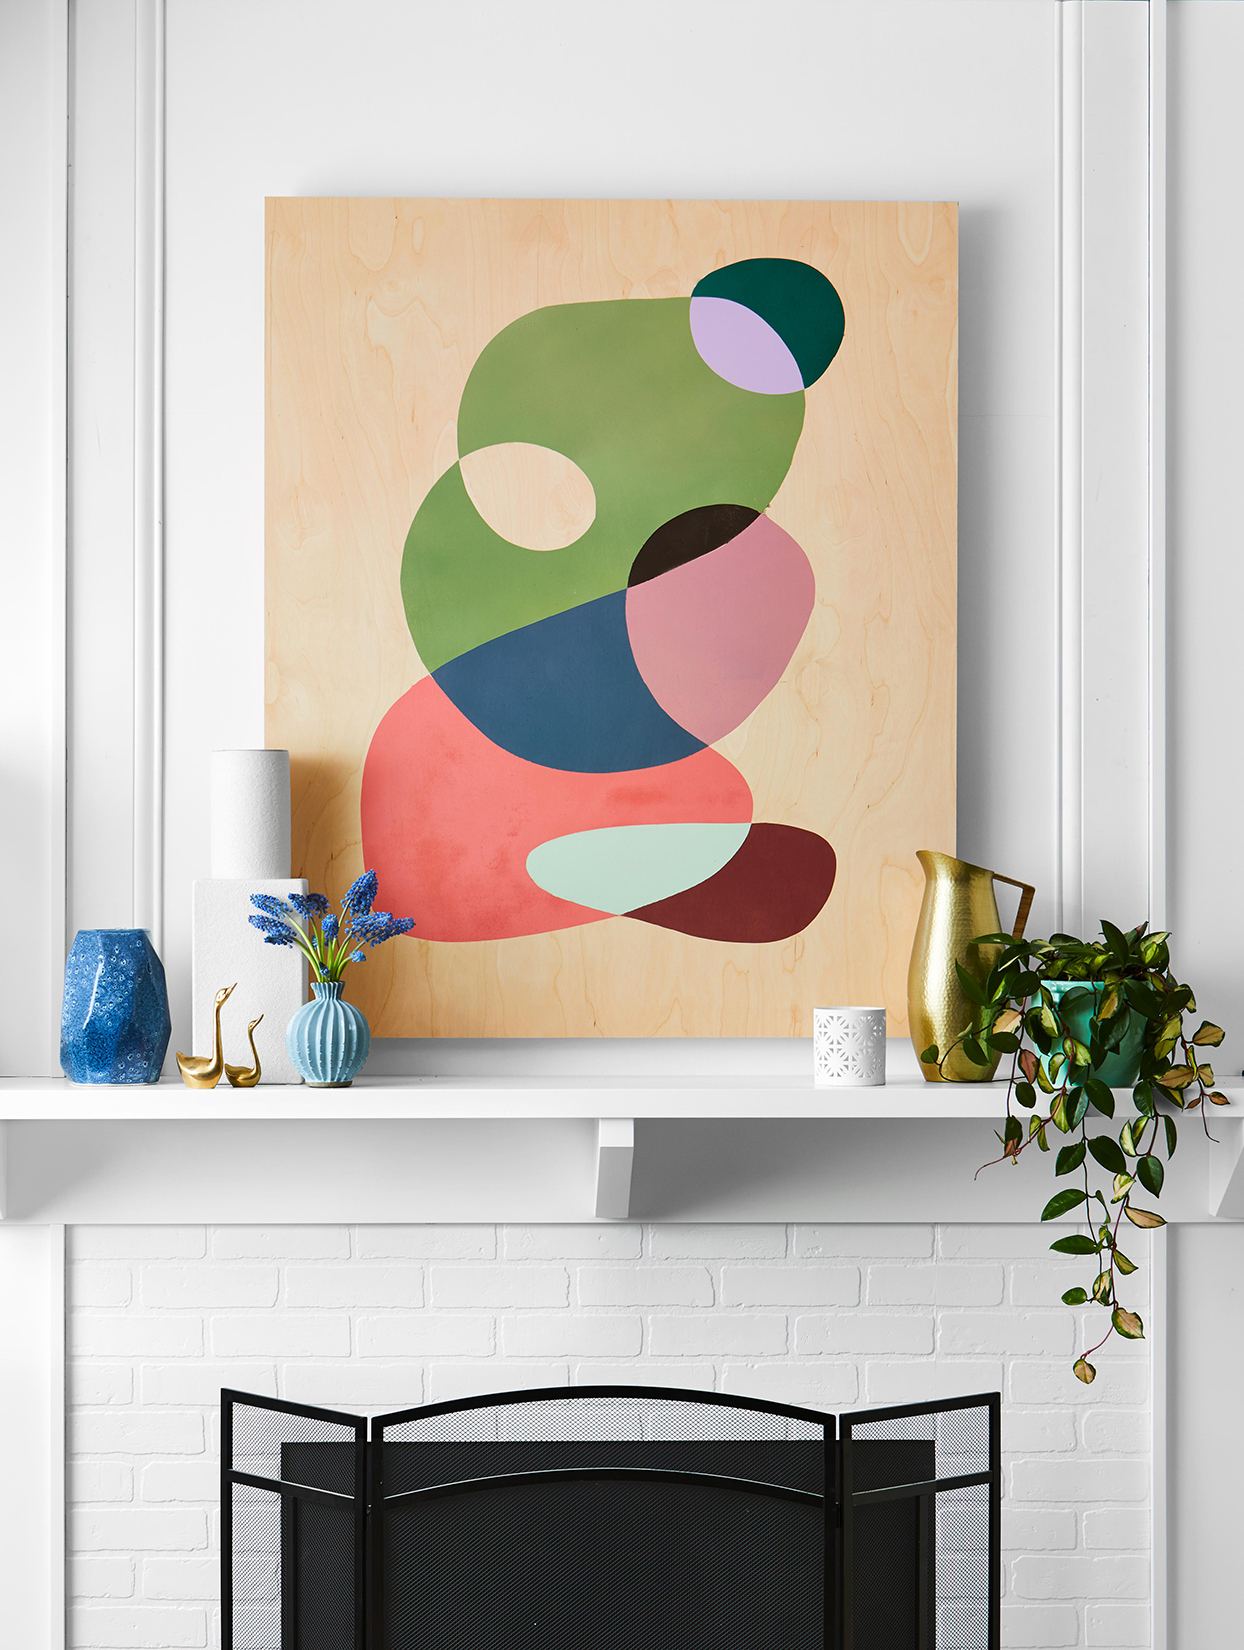 Colorful painting on mantelpiece at home